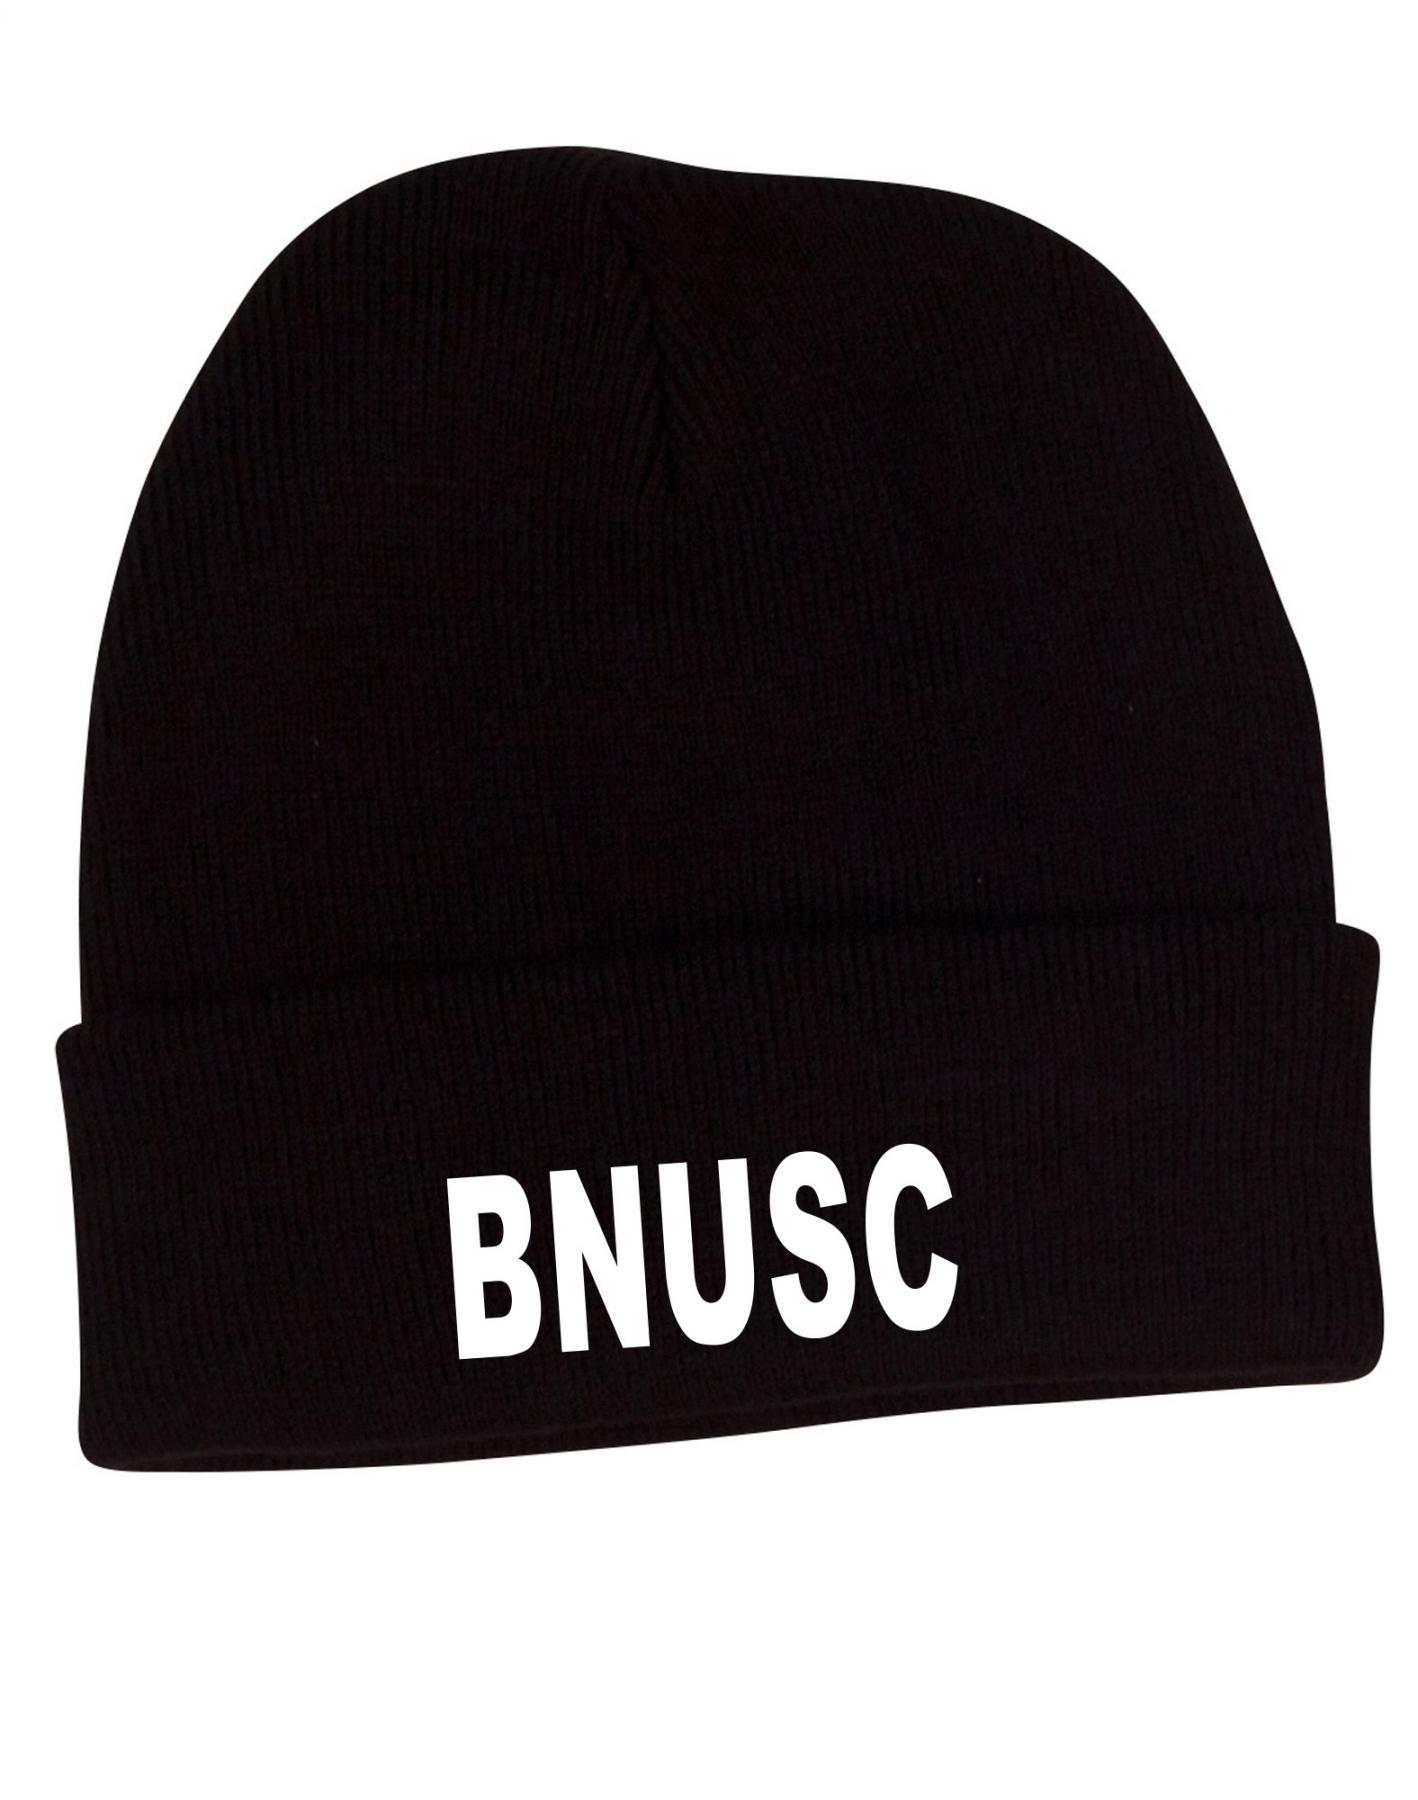 BNUSC Embroidered Beanie